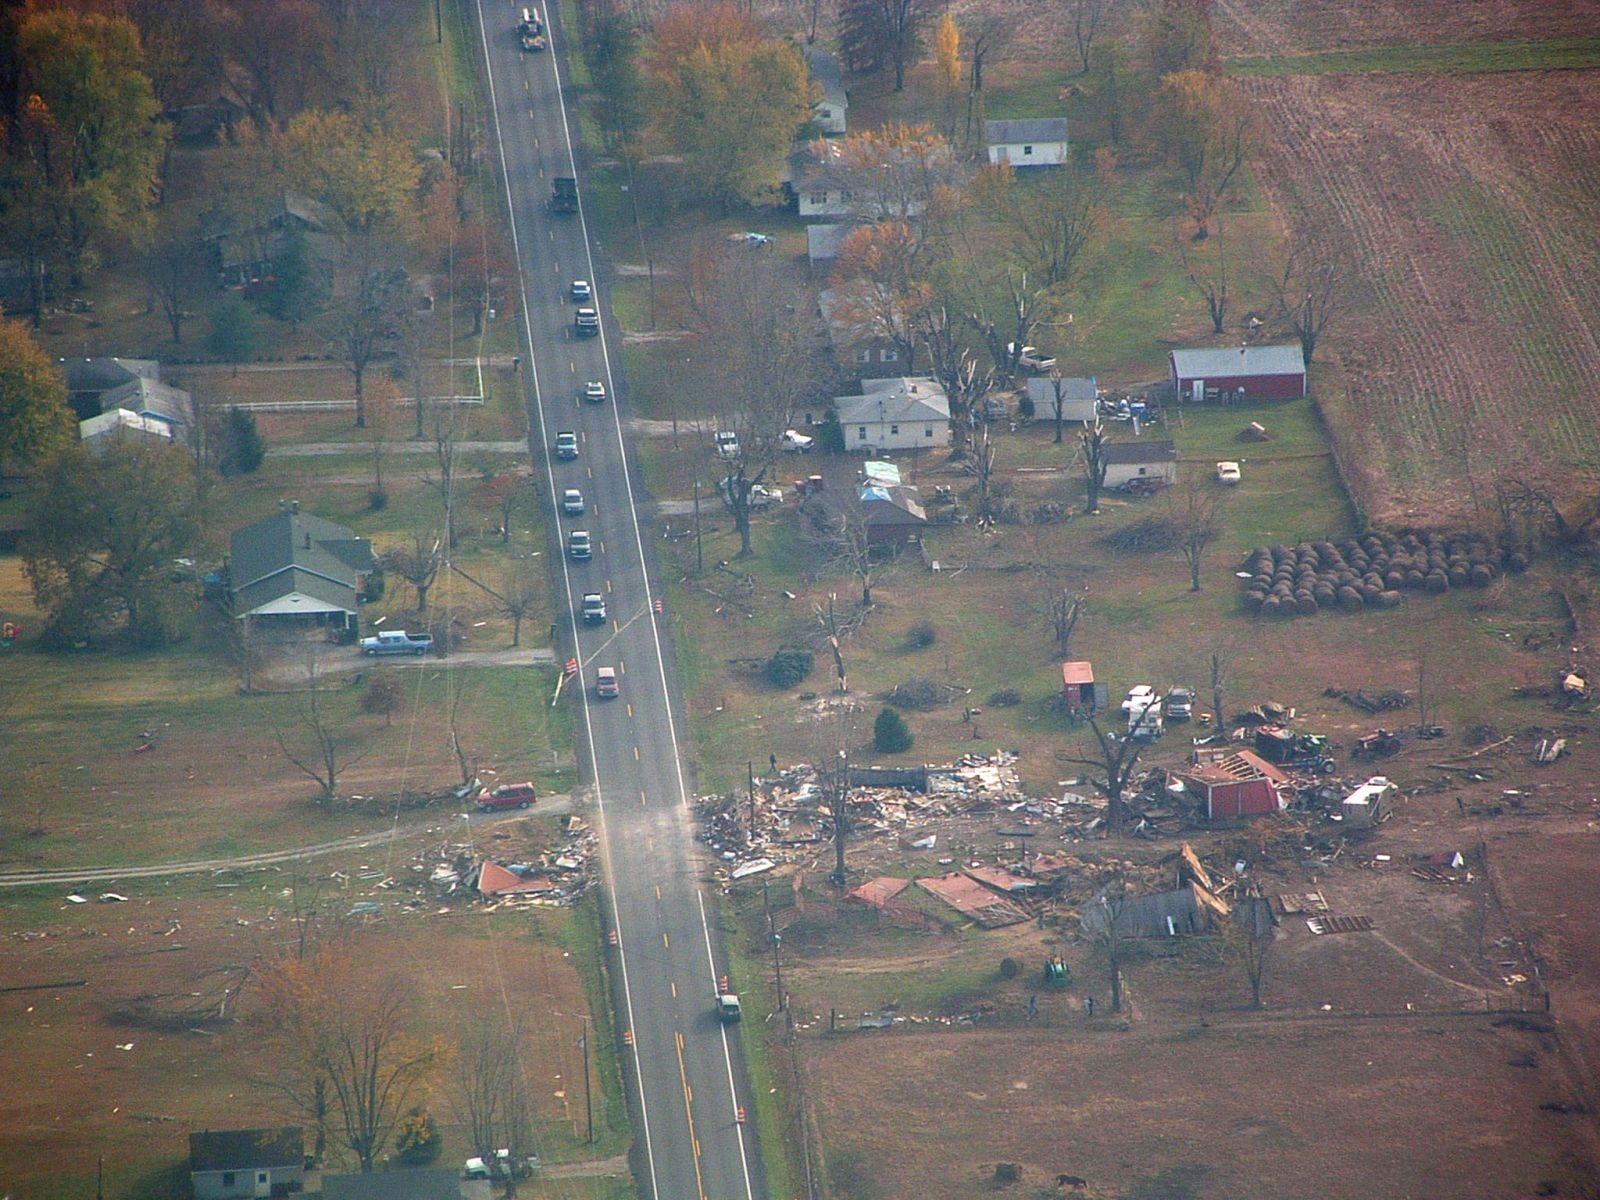 Nov 6th 2005 Evansville Area Tornado Ariel Wiring Diagram Here Are Some Aerial Pictures Of The Track